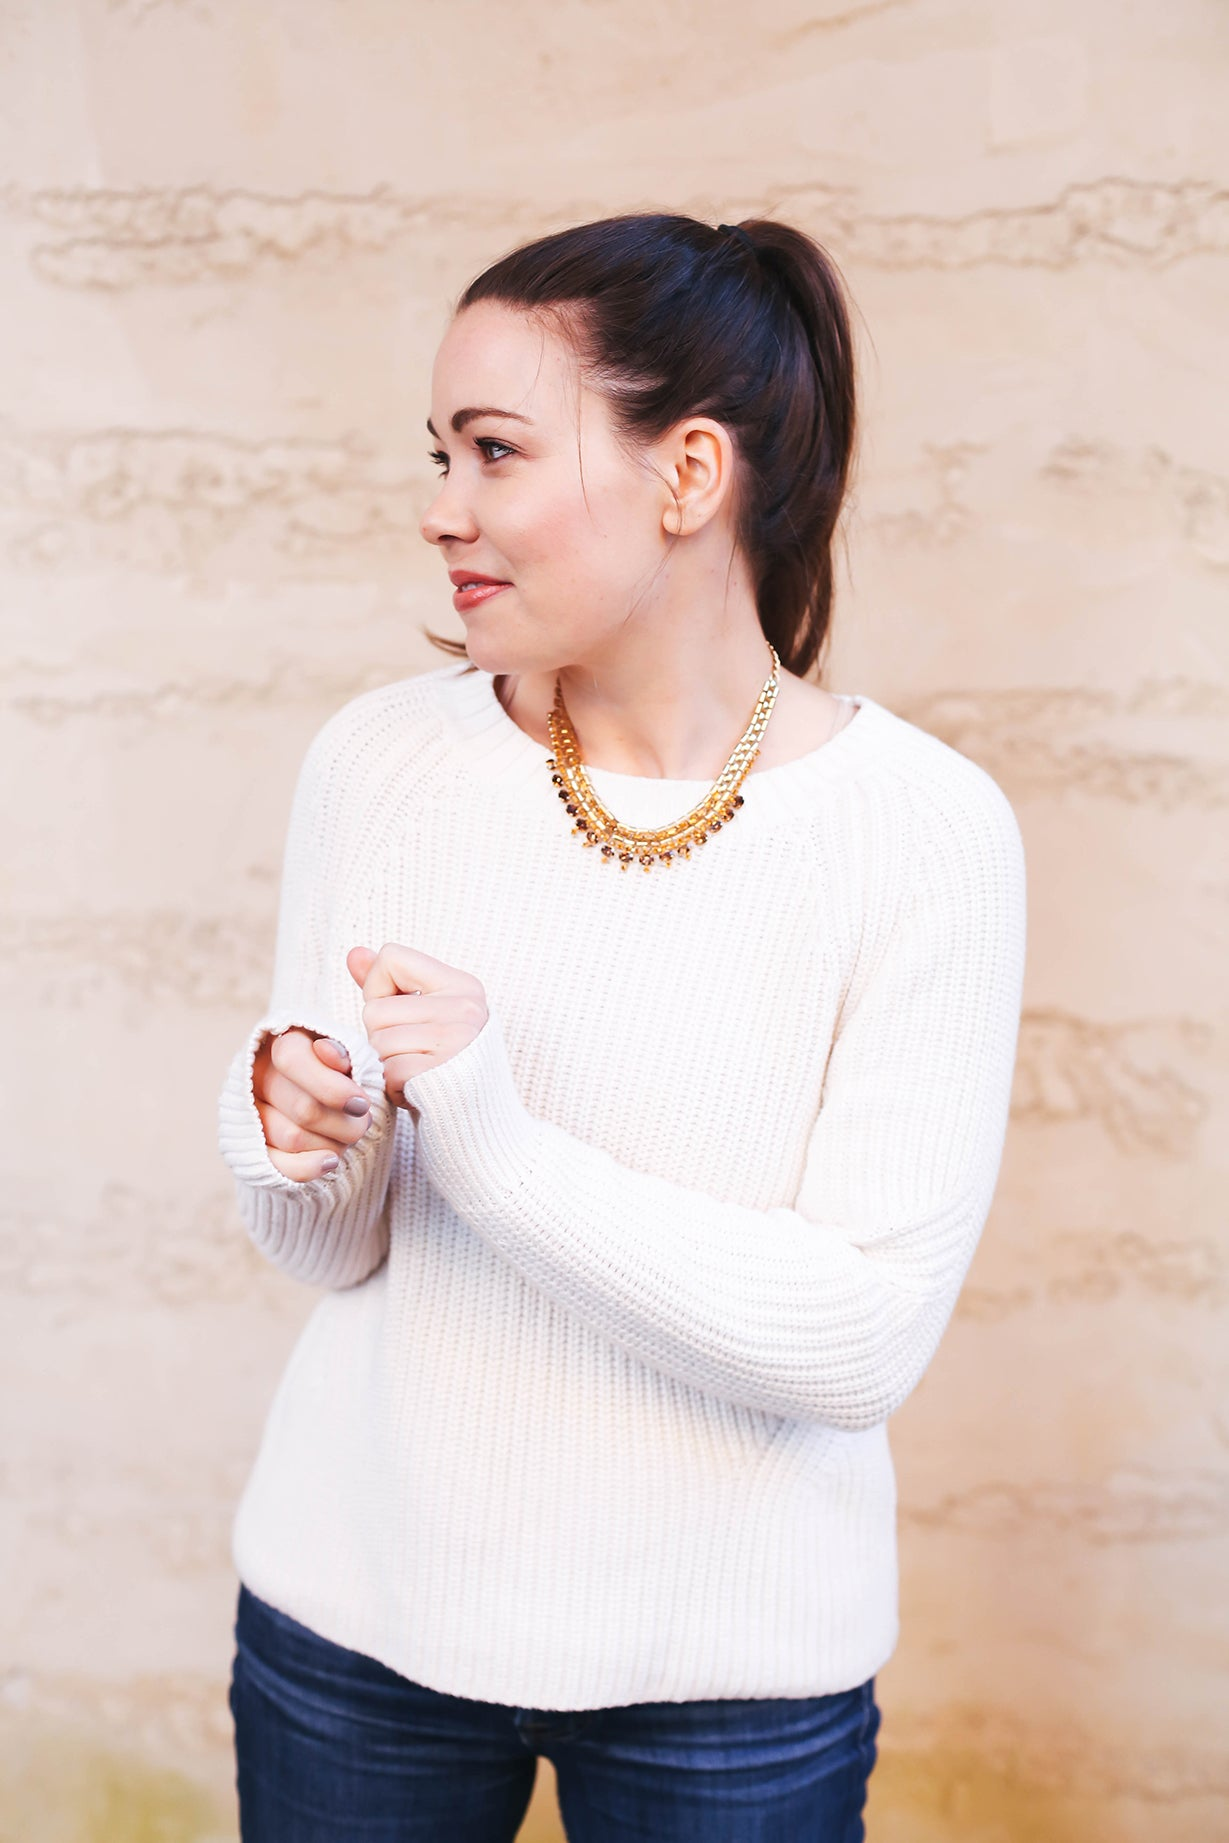 Cream sweater and statement necklace